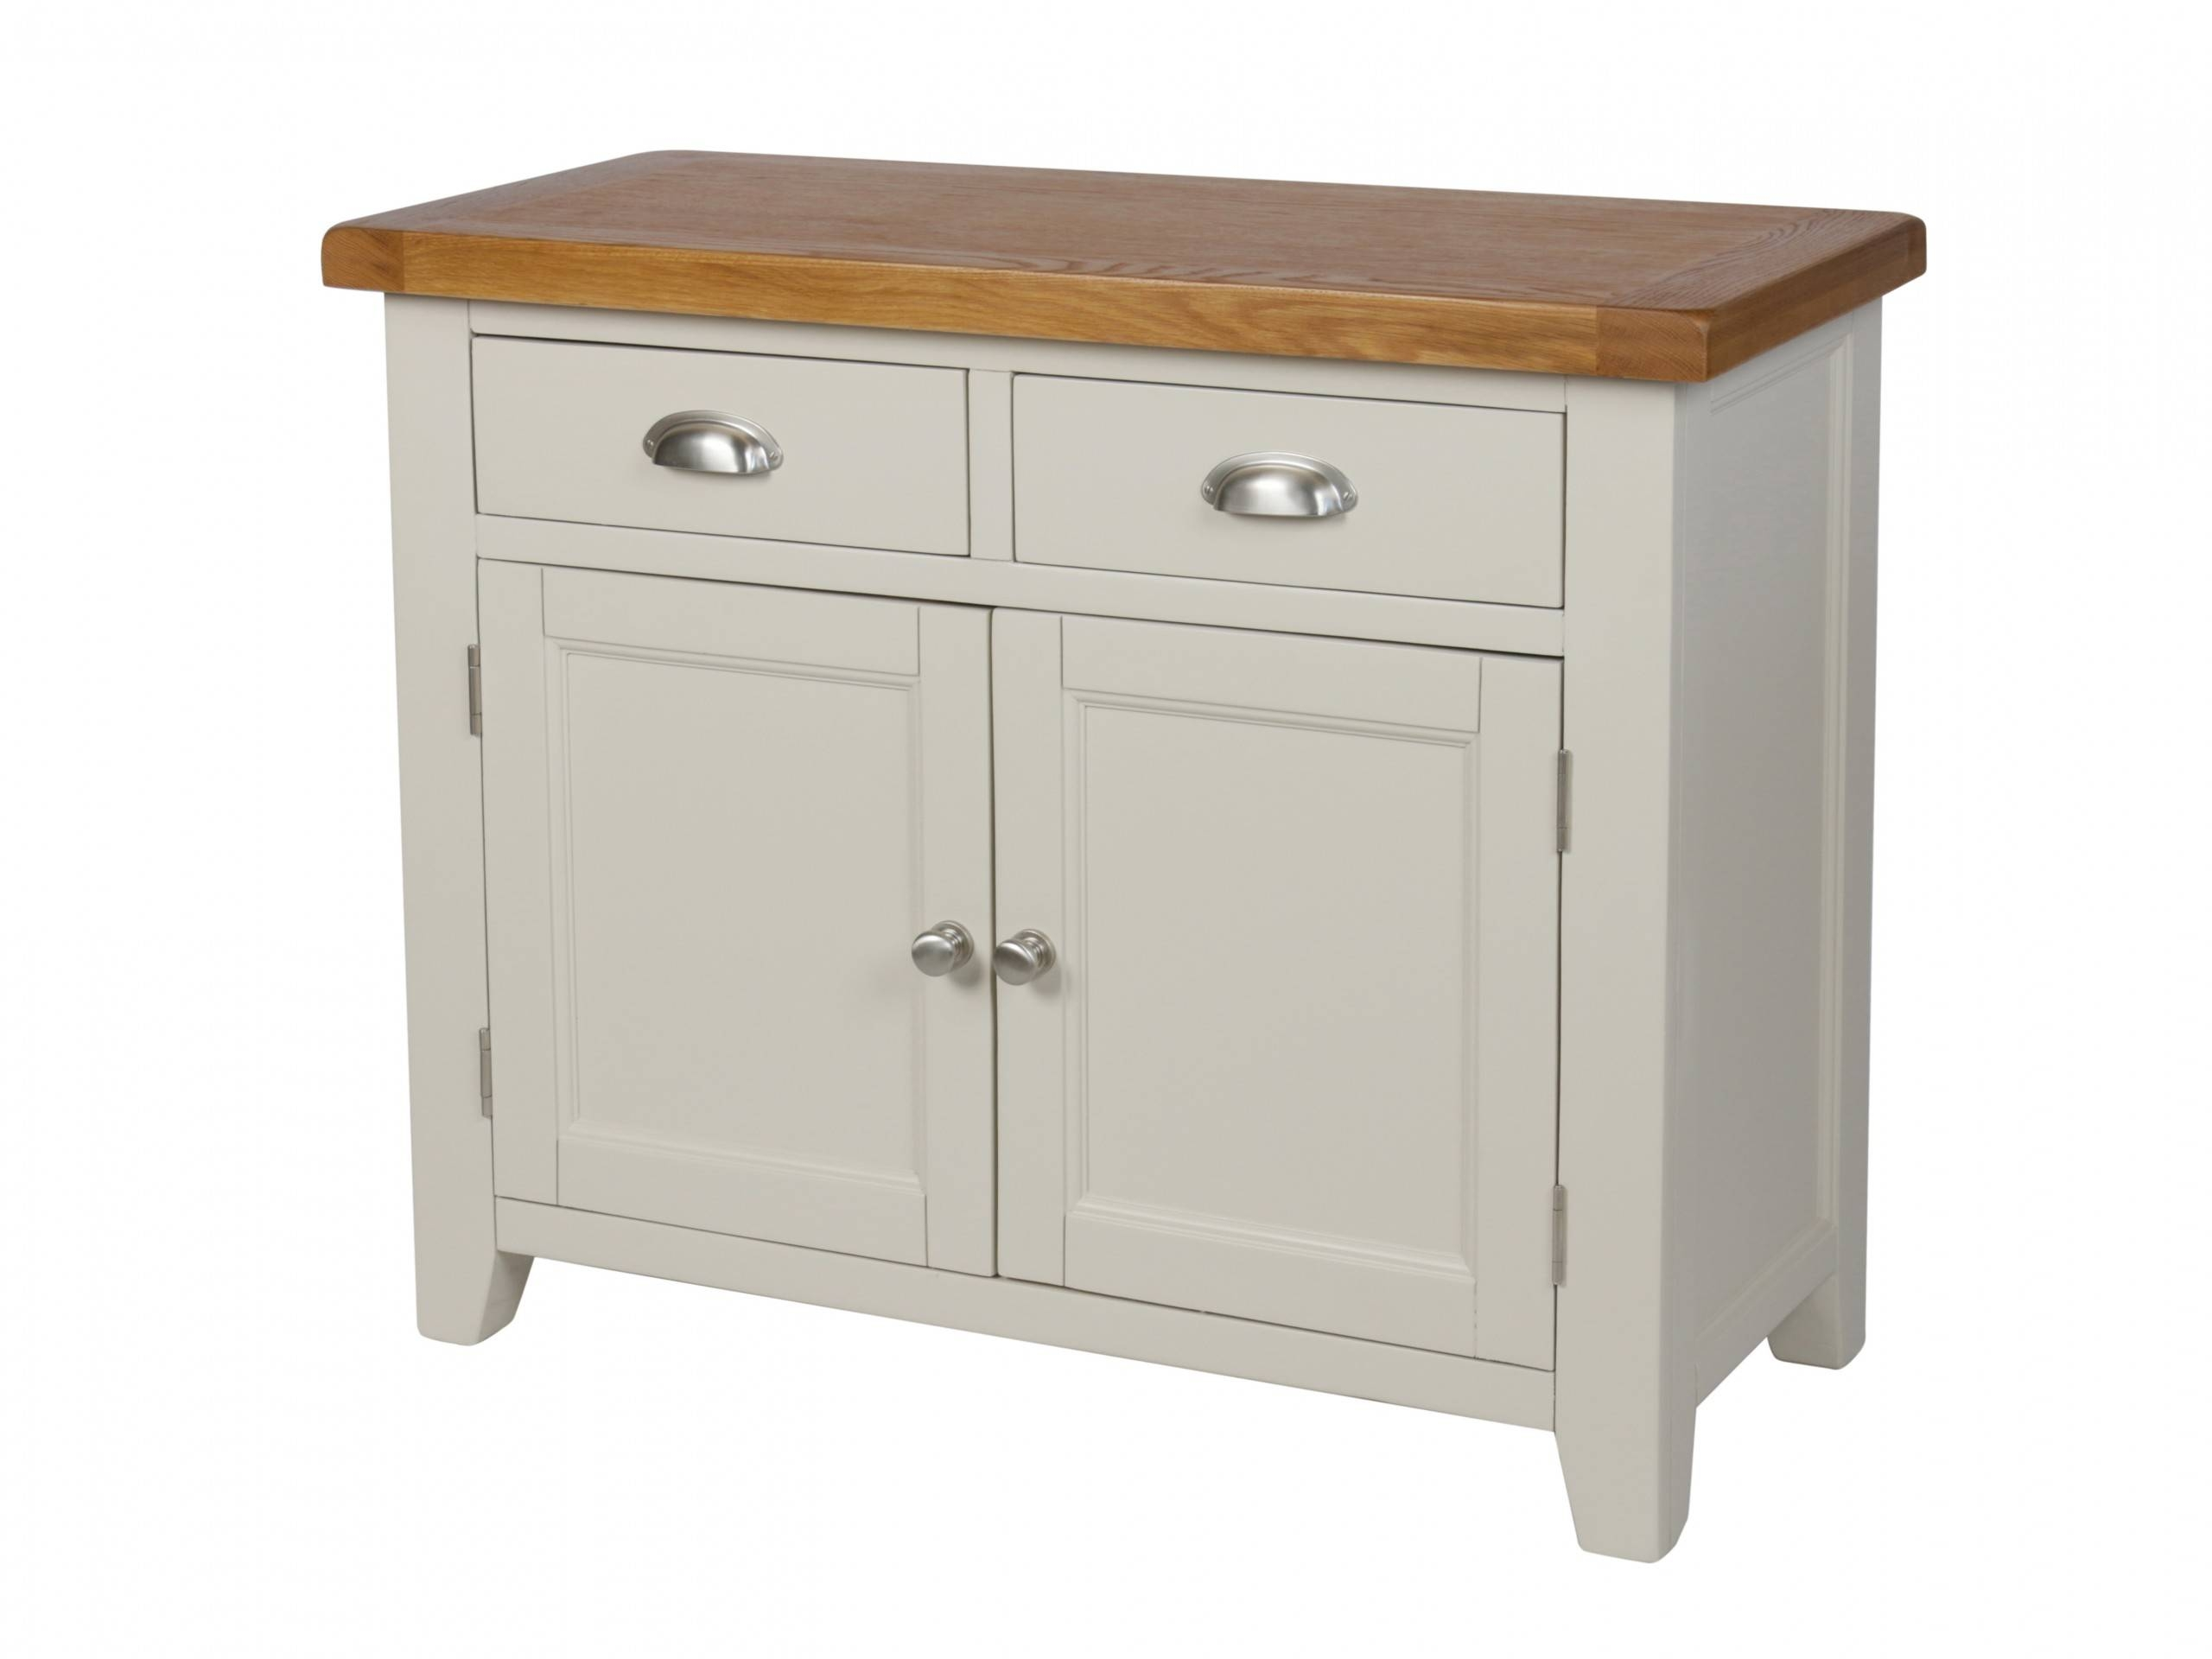 Country Cottage 100Cm Grey Painted Oak Sideboard Intended For Grey Painted Sideboards (#3 of 15)